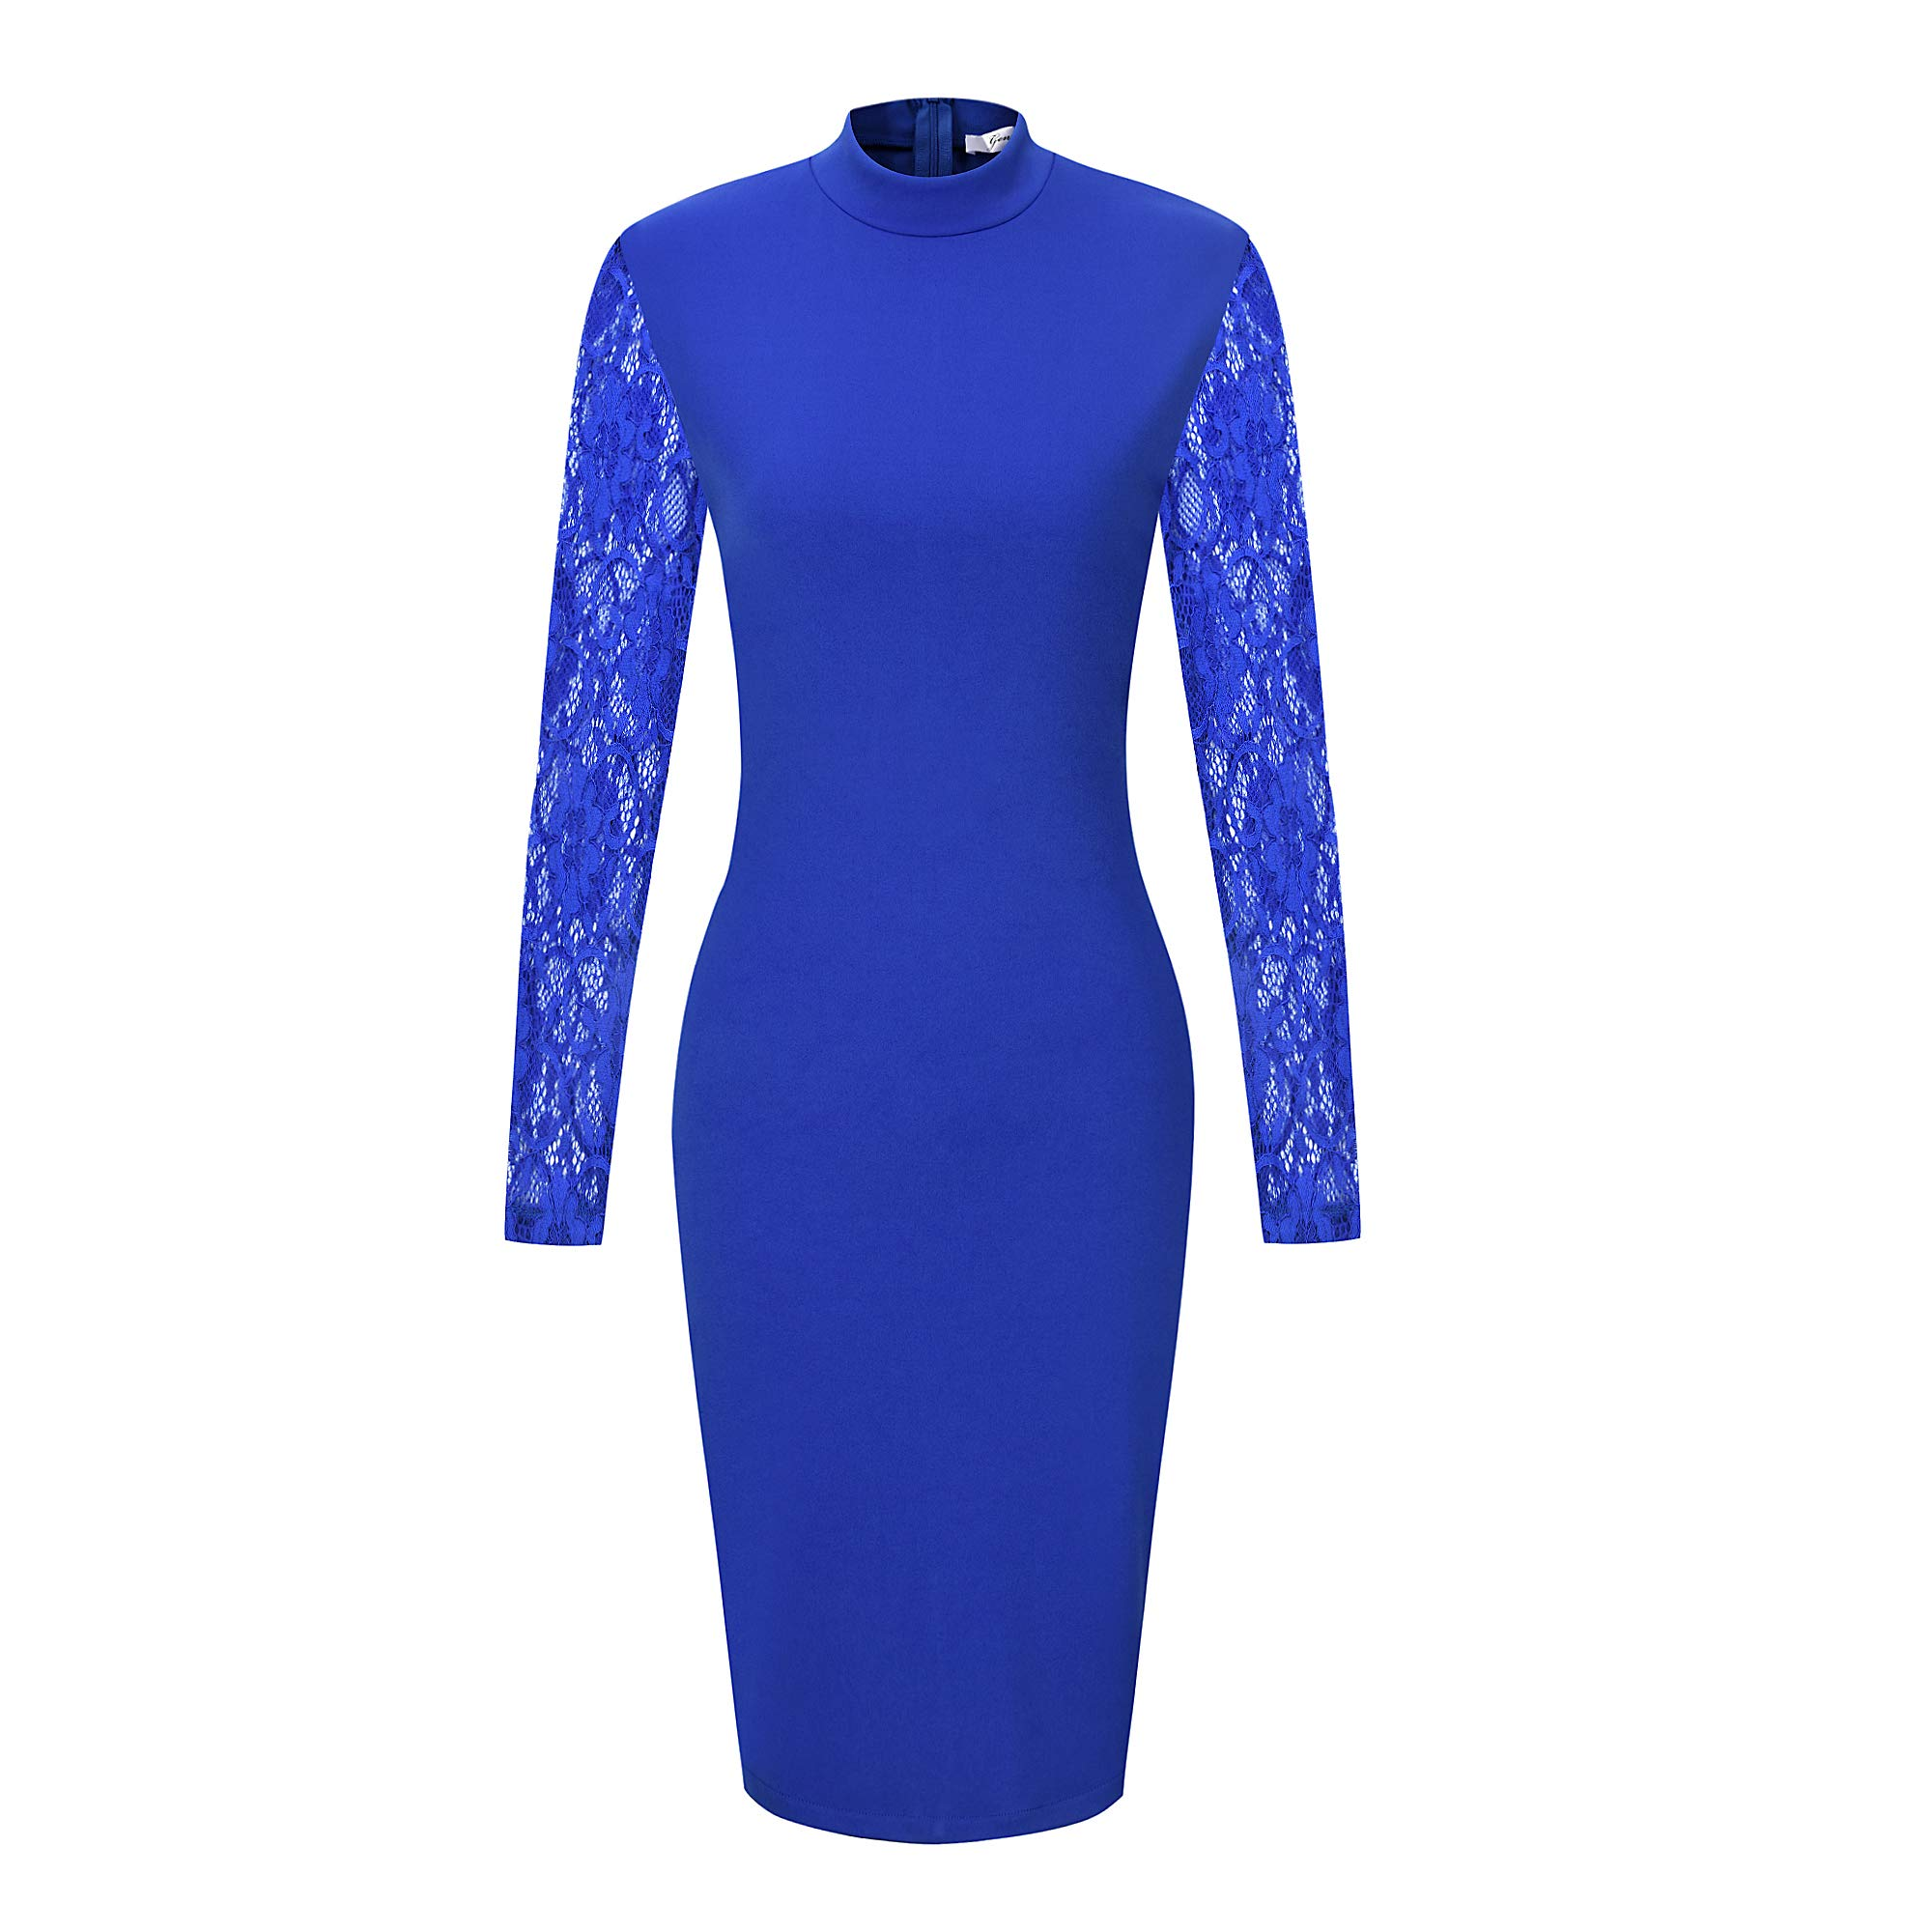 Available at Amazon: GENSHUO Women's Dresses Sexy Bodycon Long Sleeves Lace Design Crew Neck Above Knee Casual Party Cocktail Dress